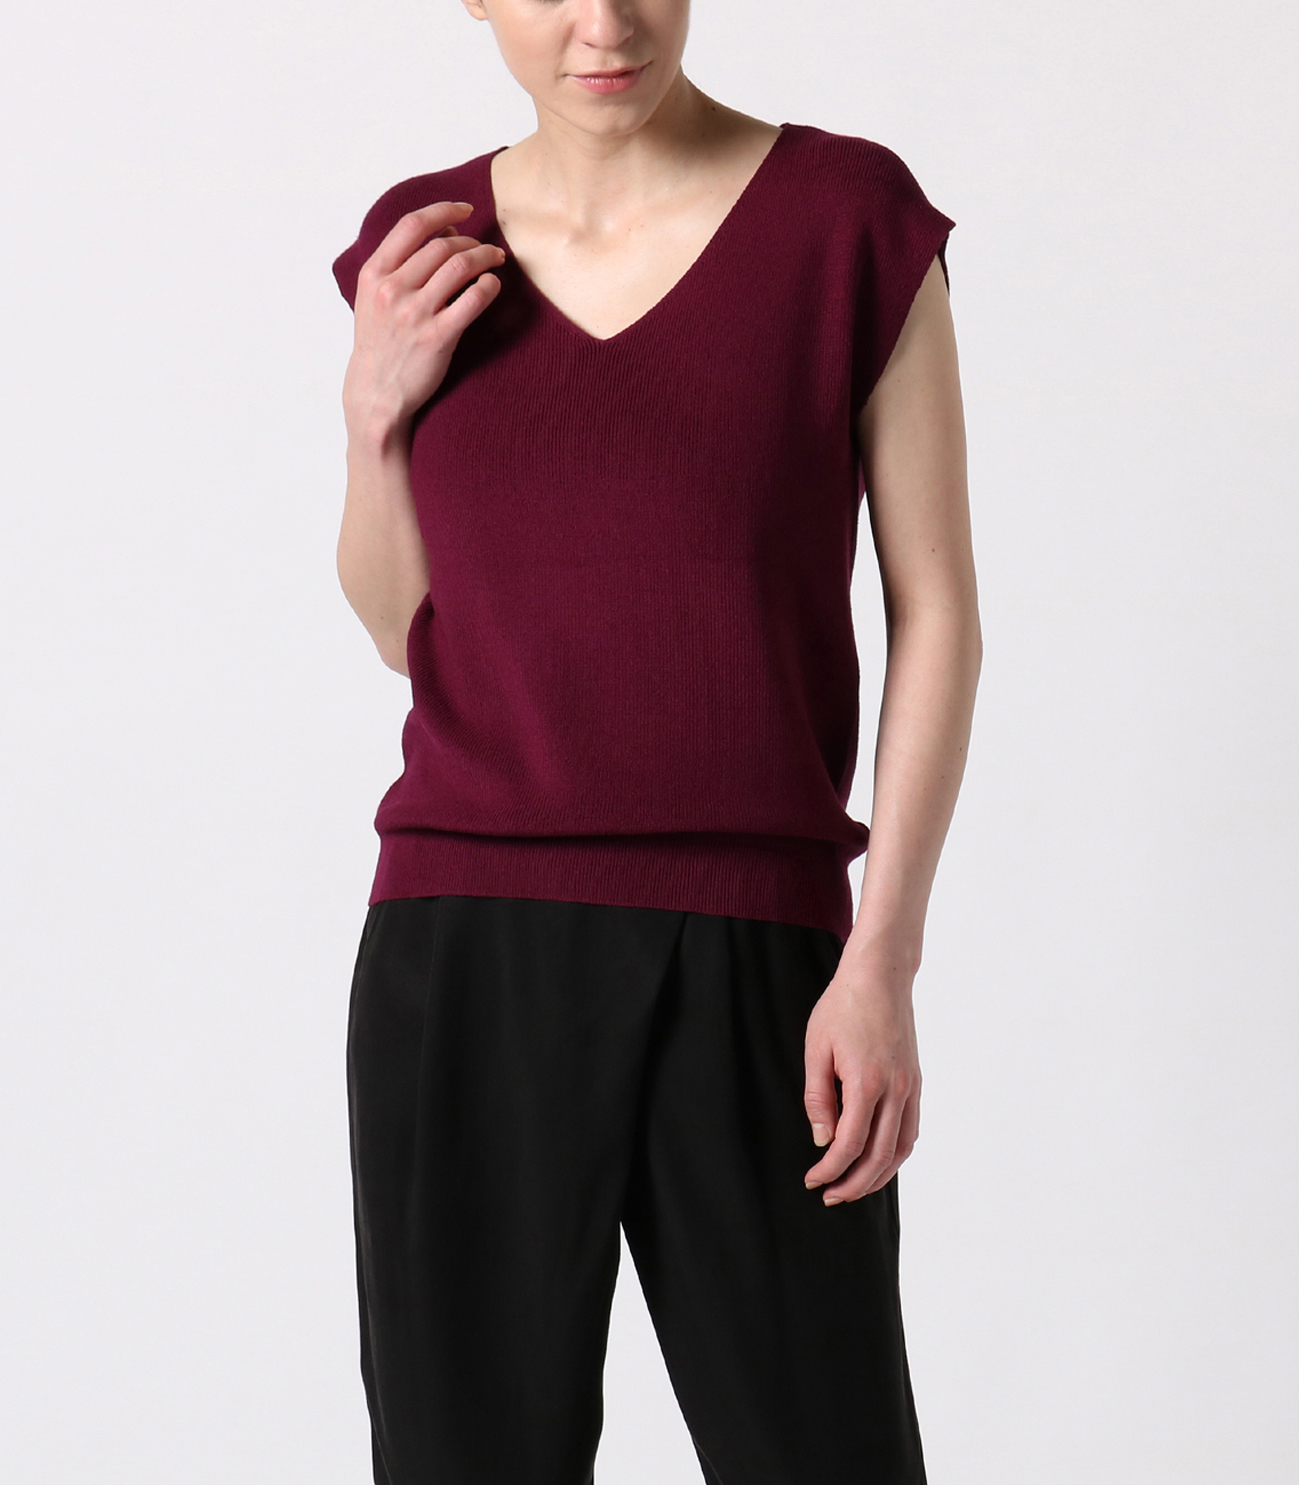 outlast sweater sleeveless vneck 詳細画像 purple 6